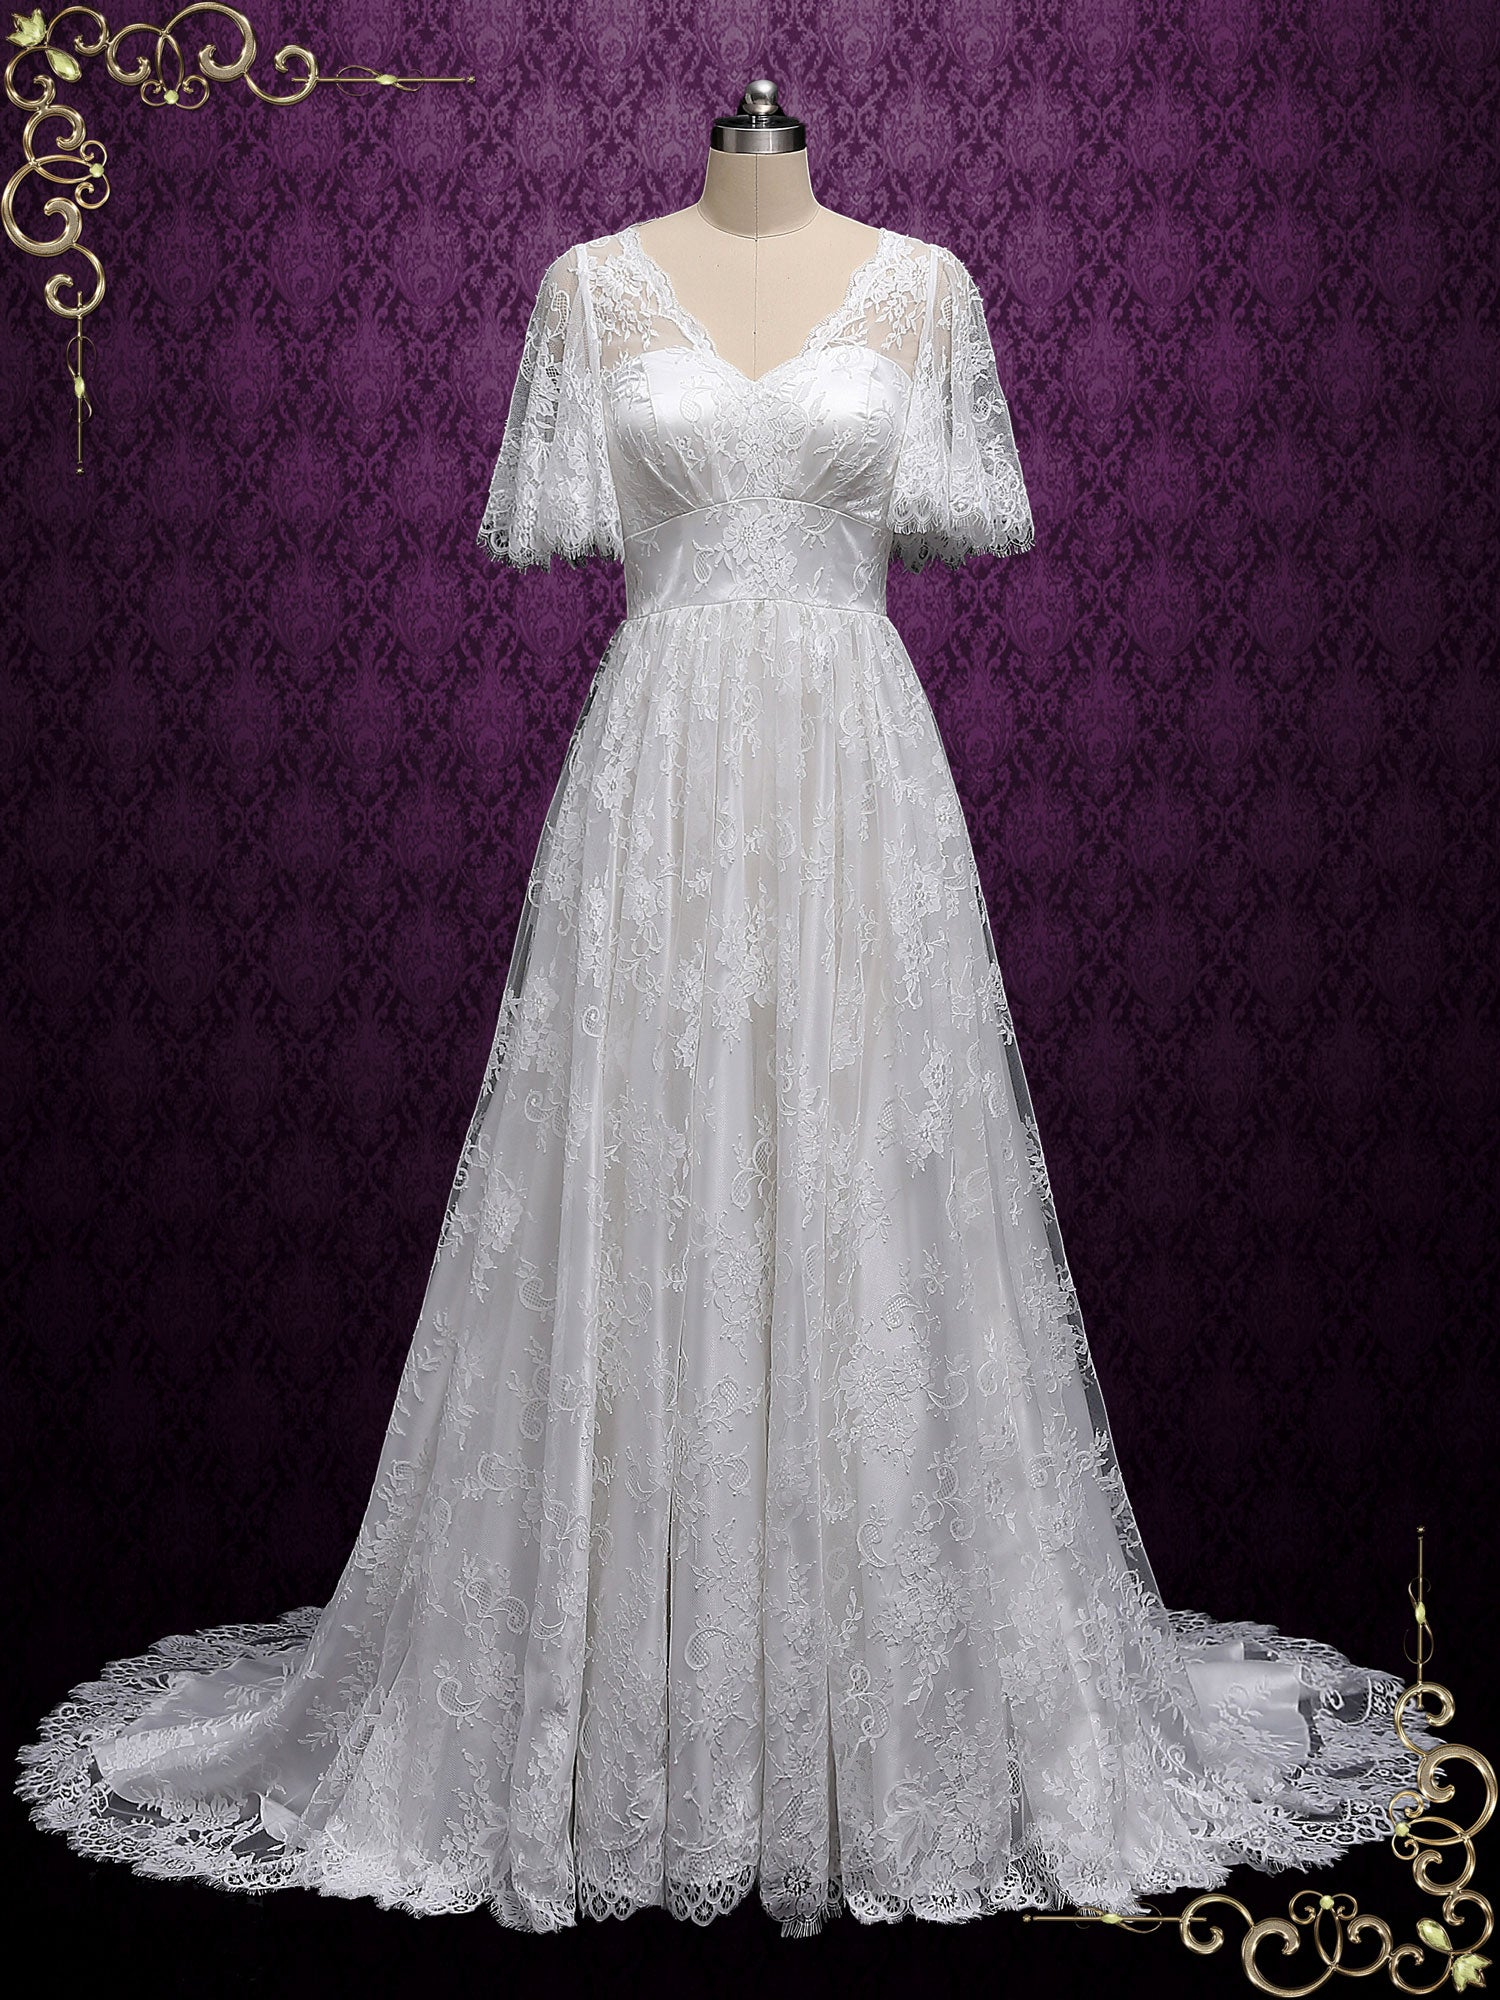 Romantic Boho Lace Wedding Dress with Butterfly Sleeves MILANA